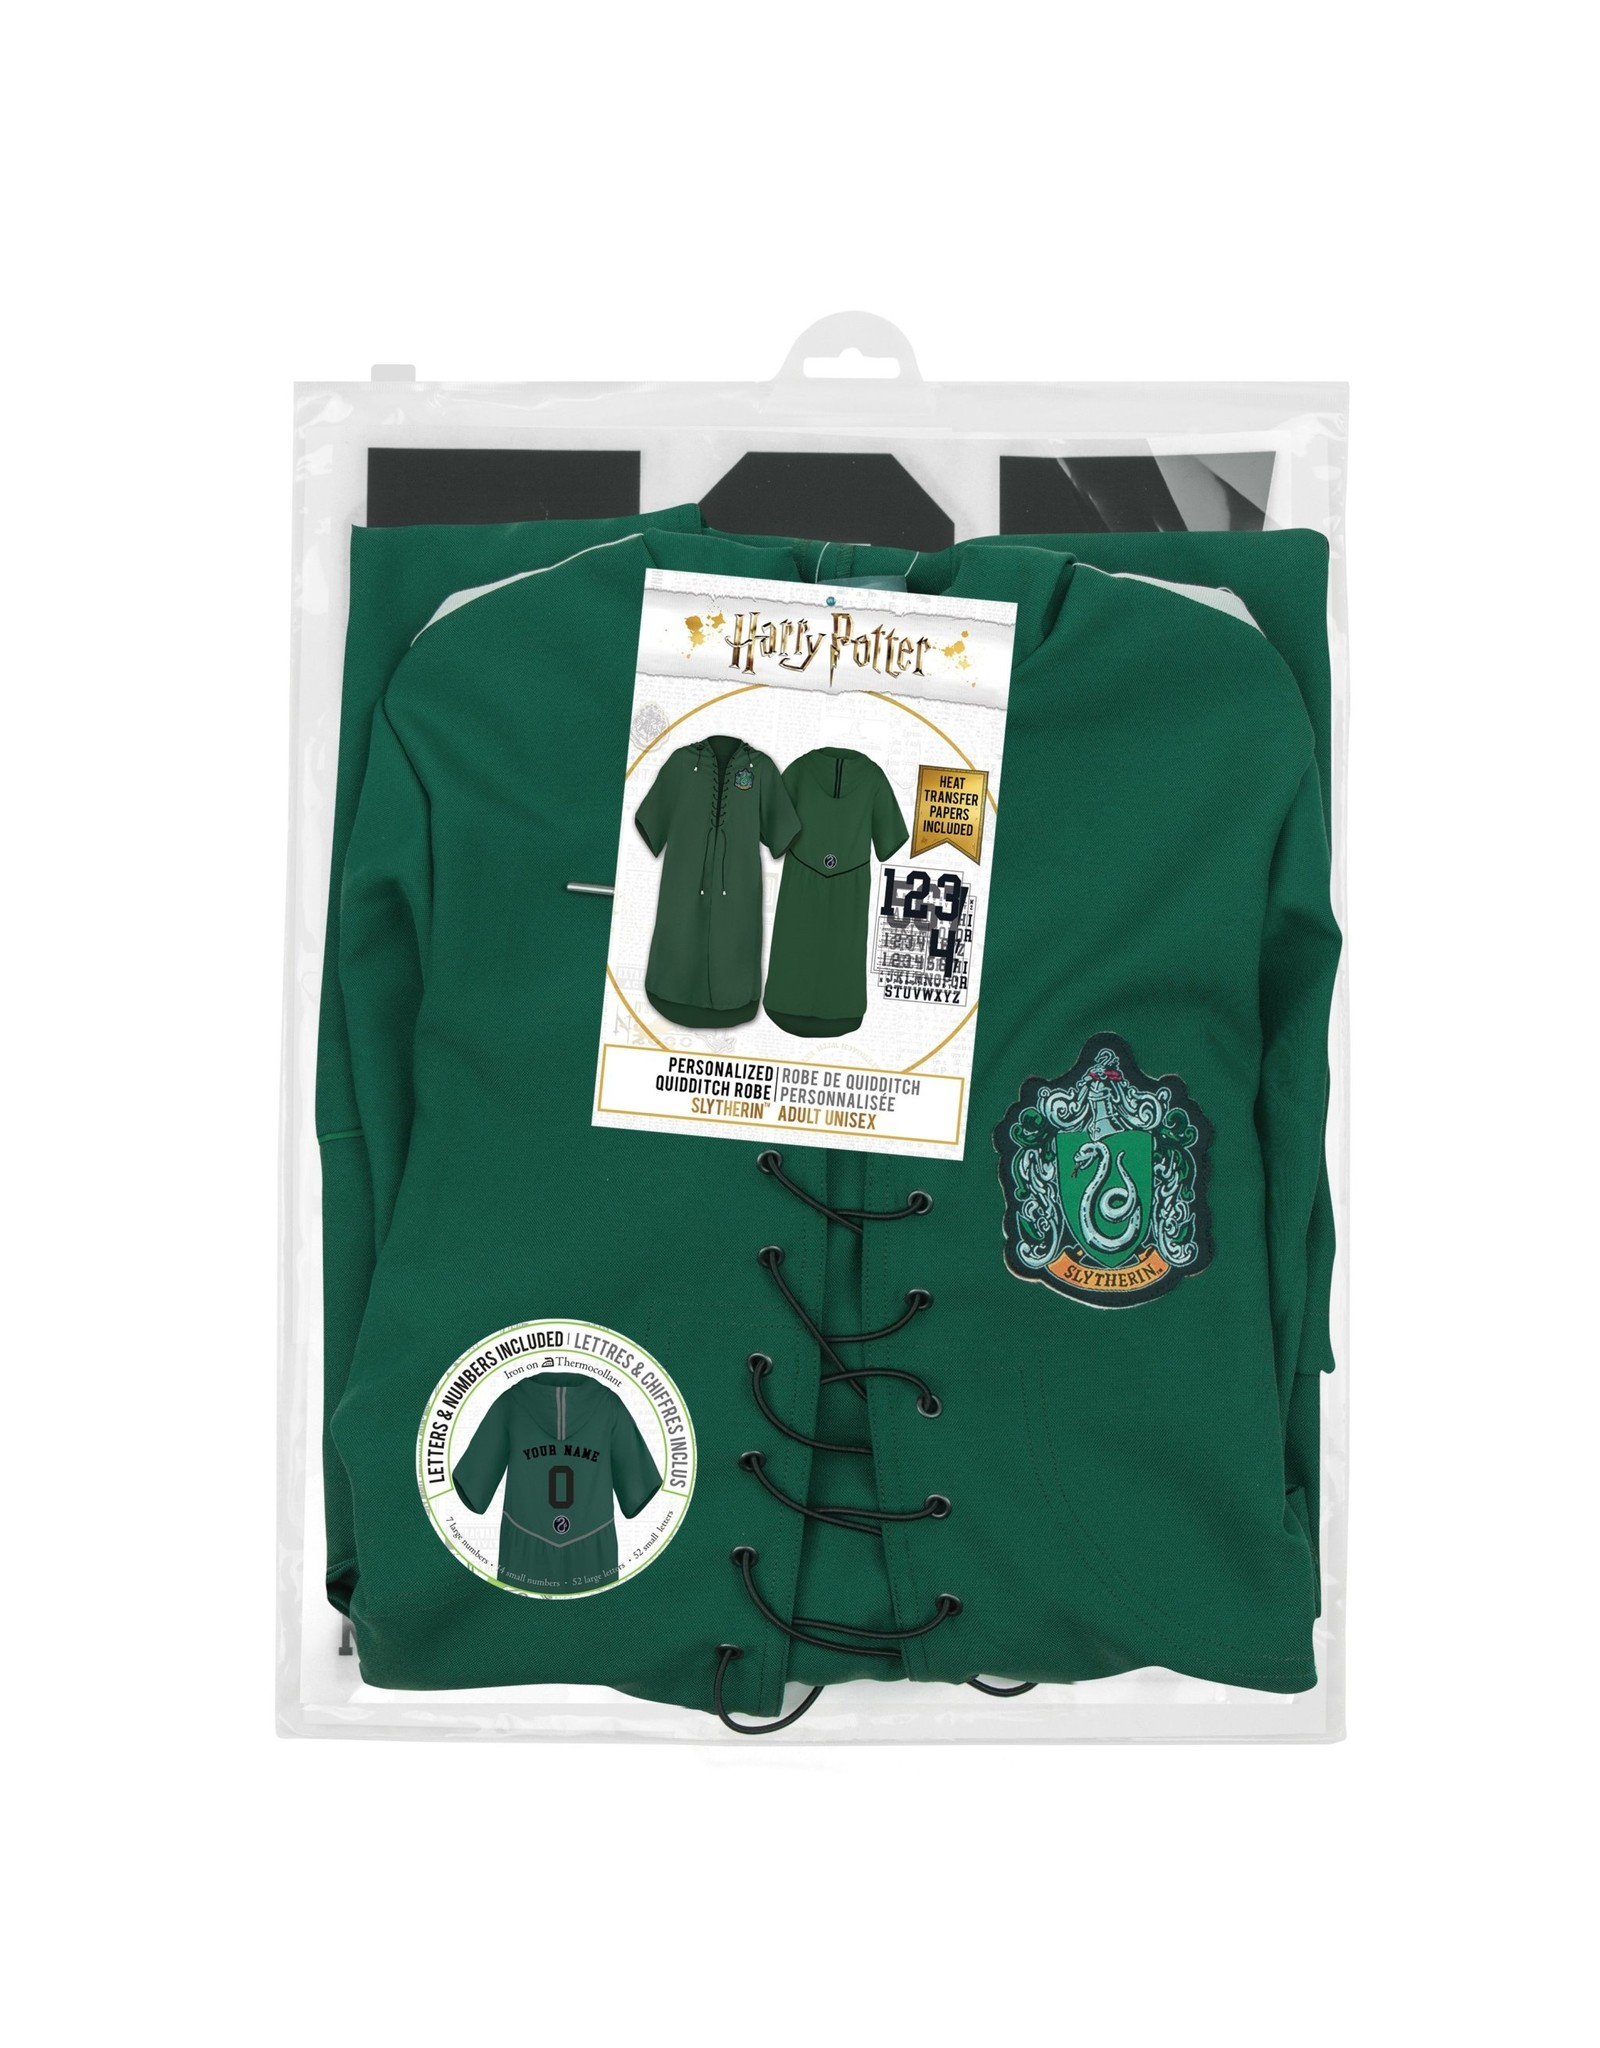 HARRY POTTER Personalised Kids Robe - Slytherin Quidditch